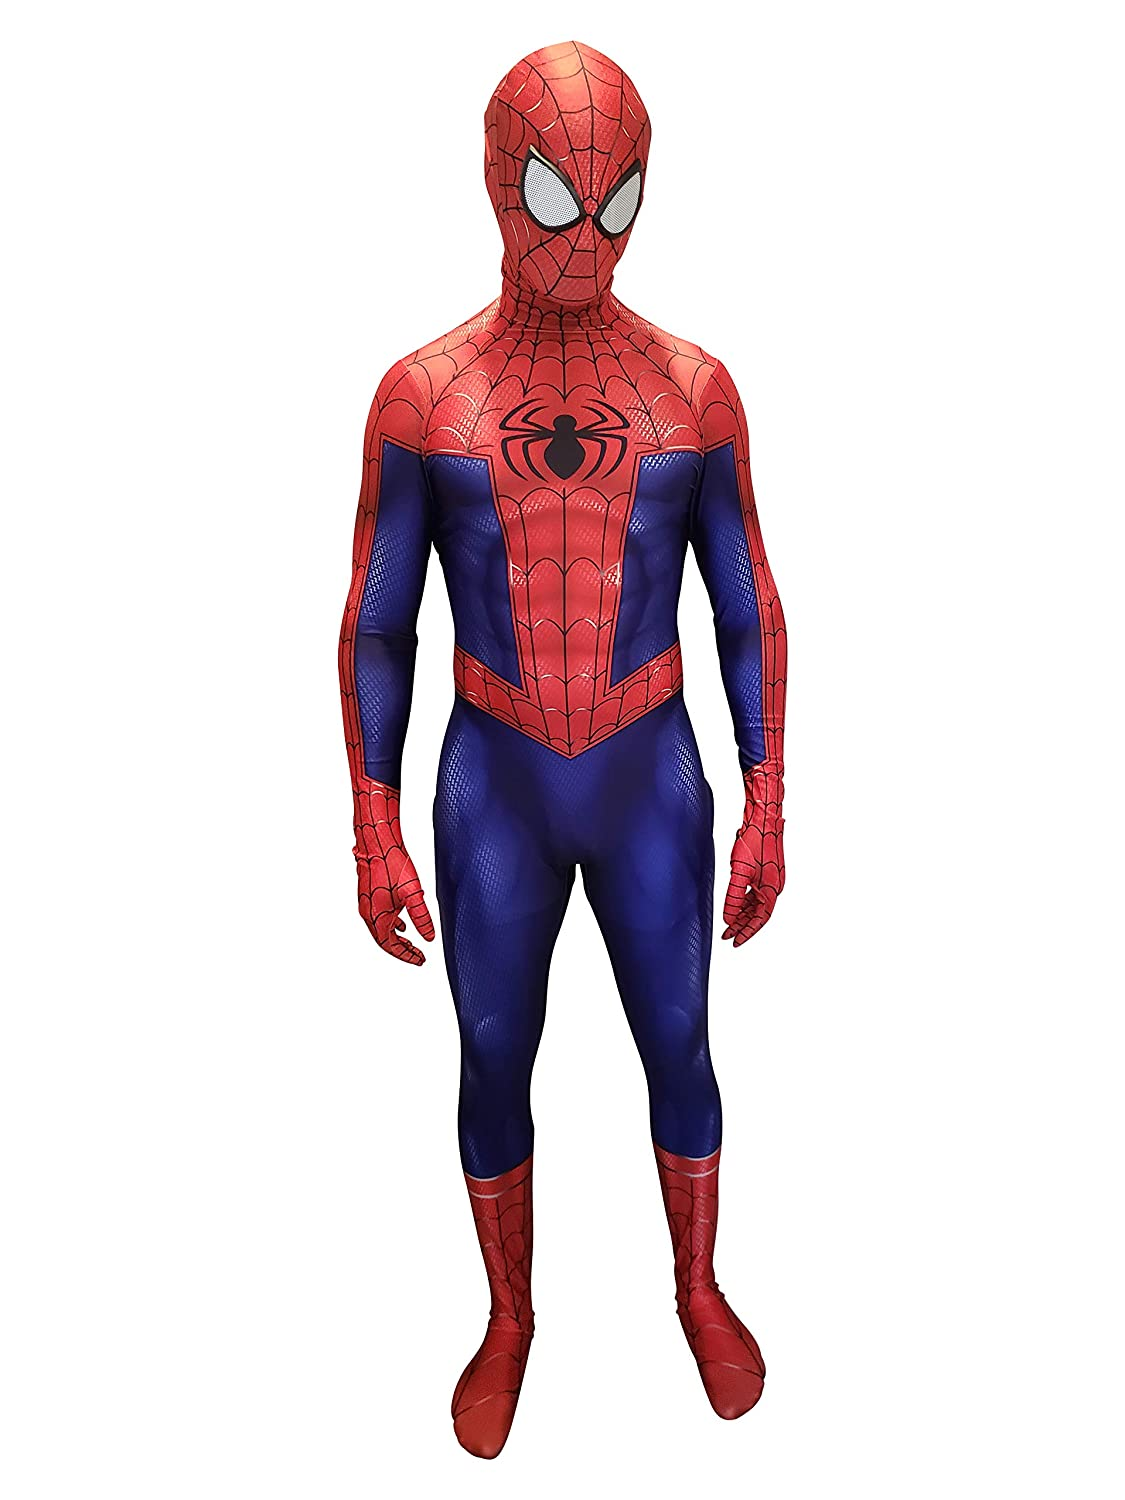 Spider-Man Cosplay Costume | Iron Spider | PS4 Insomniac Spiderman | Bagley | Superior |All Lycra Fabric | Bodysuit